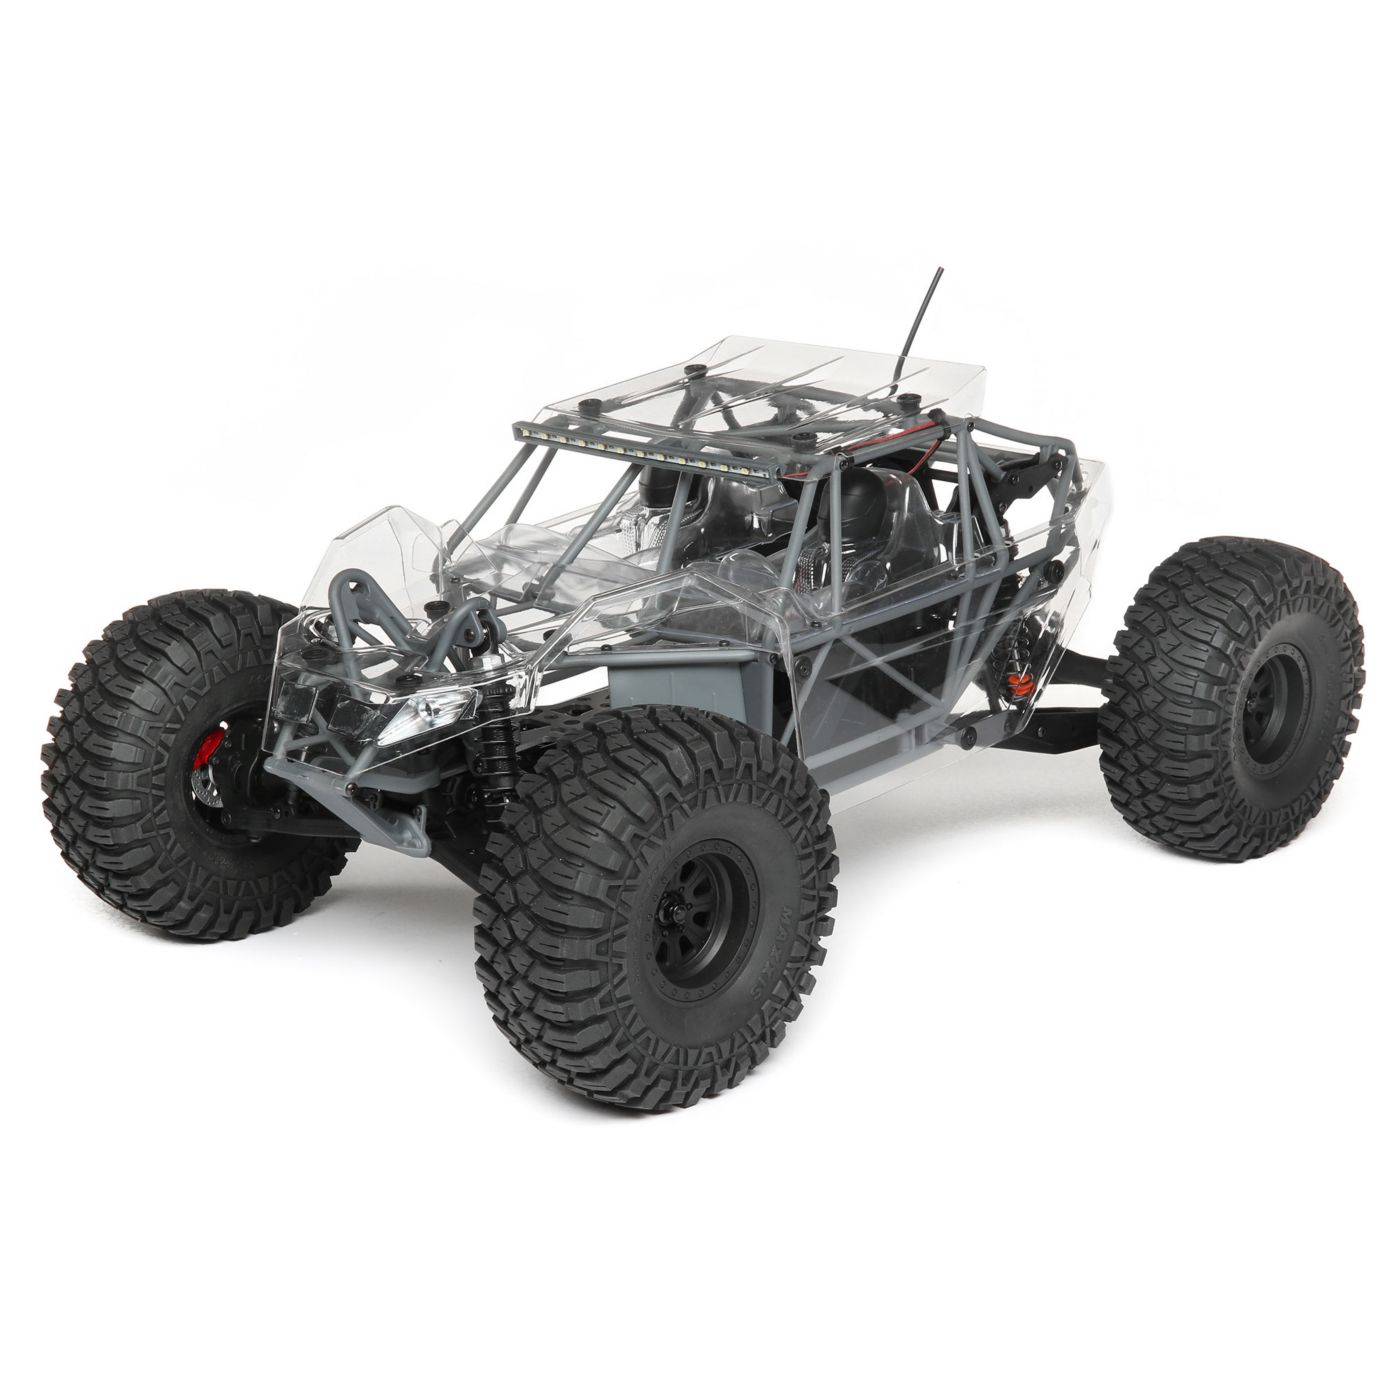 For Those About to Build (and Rock): Losi Launches the Rock Rey Kit